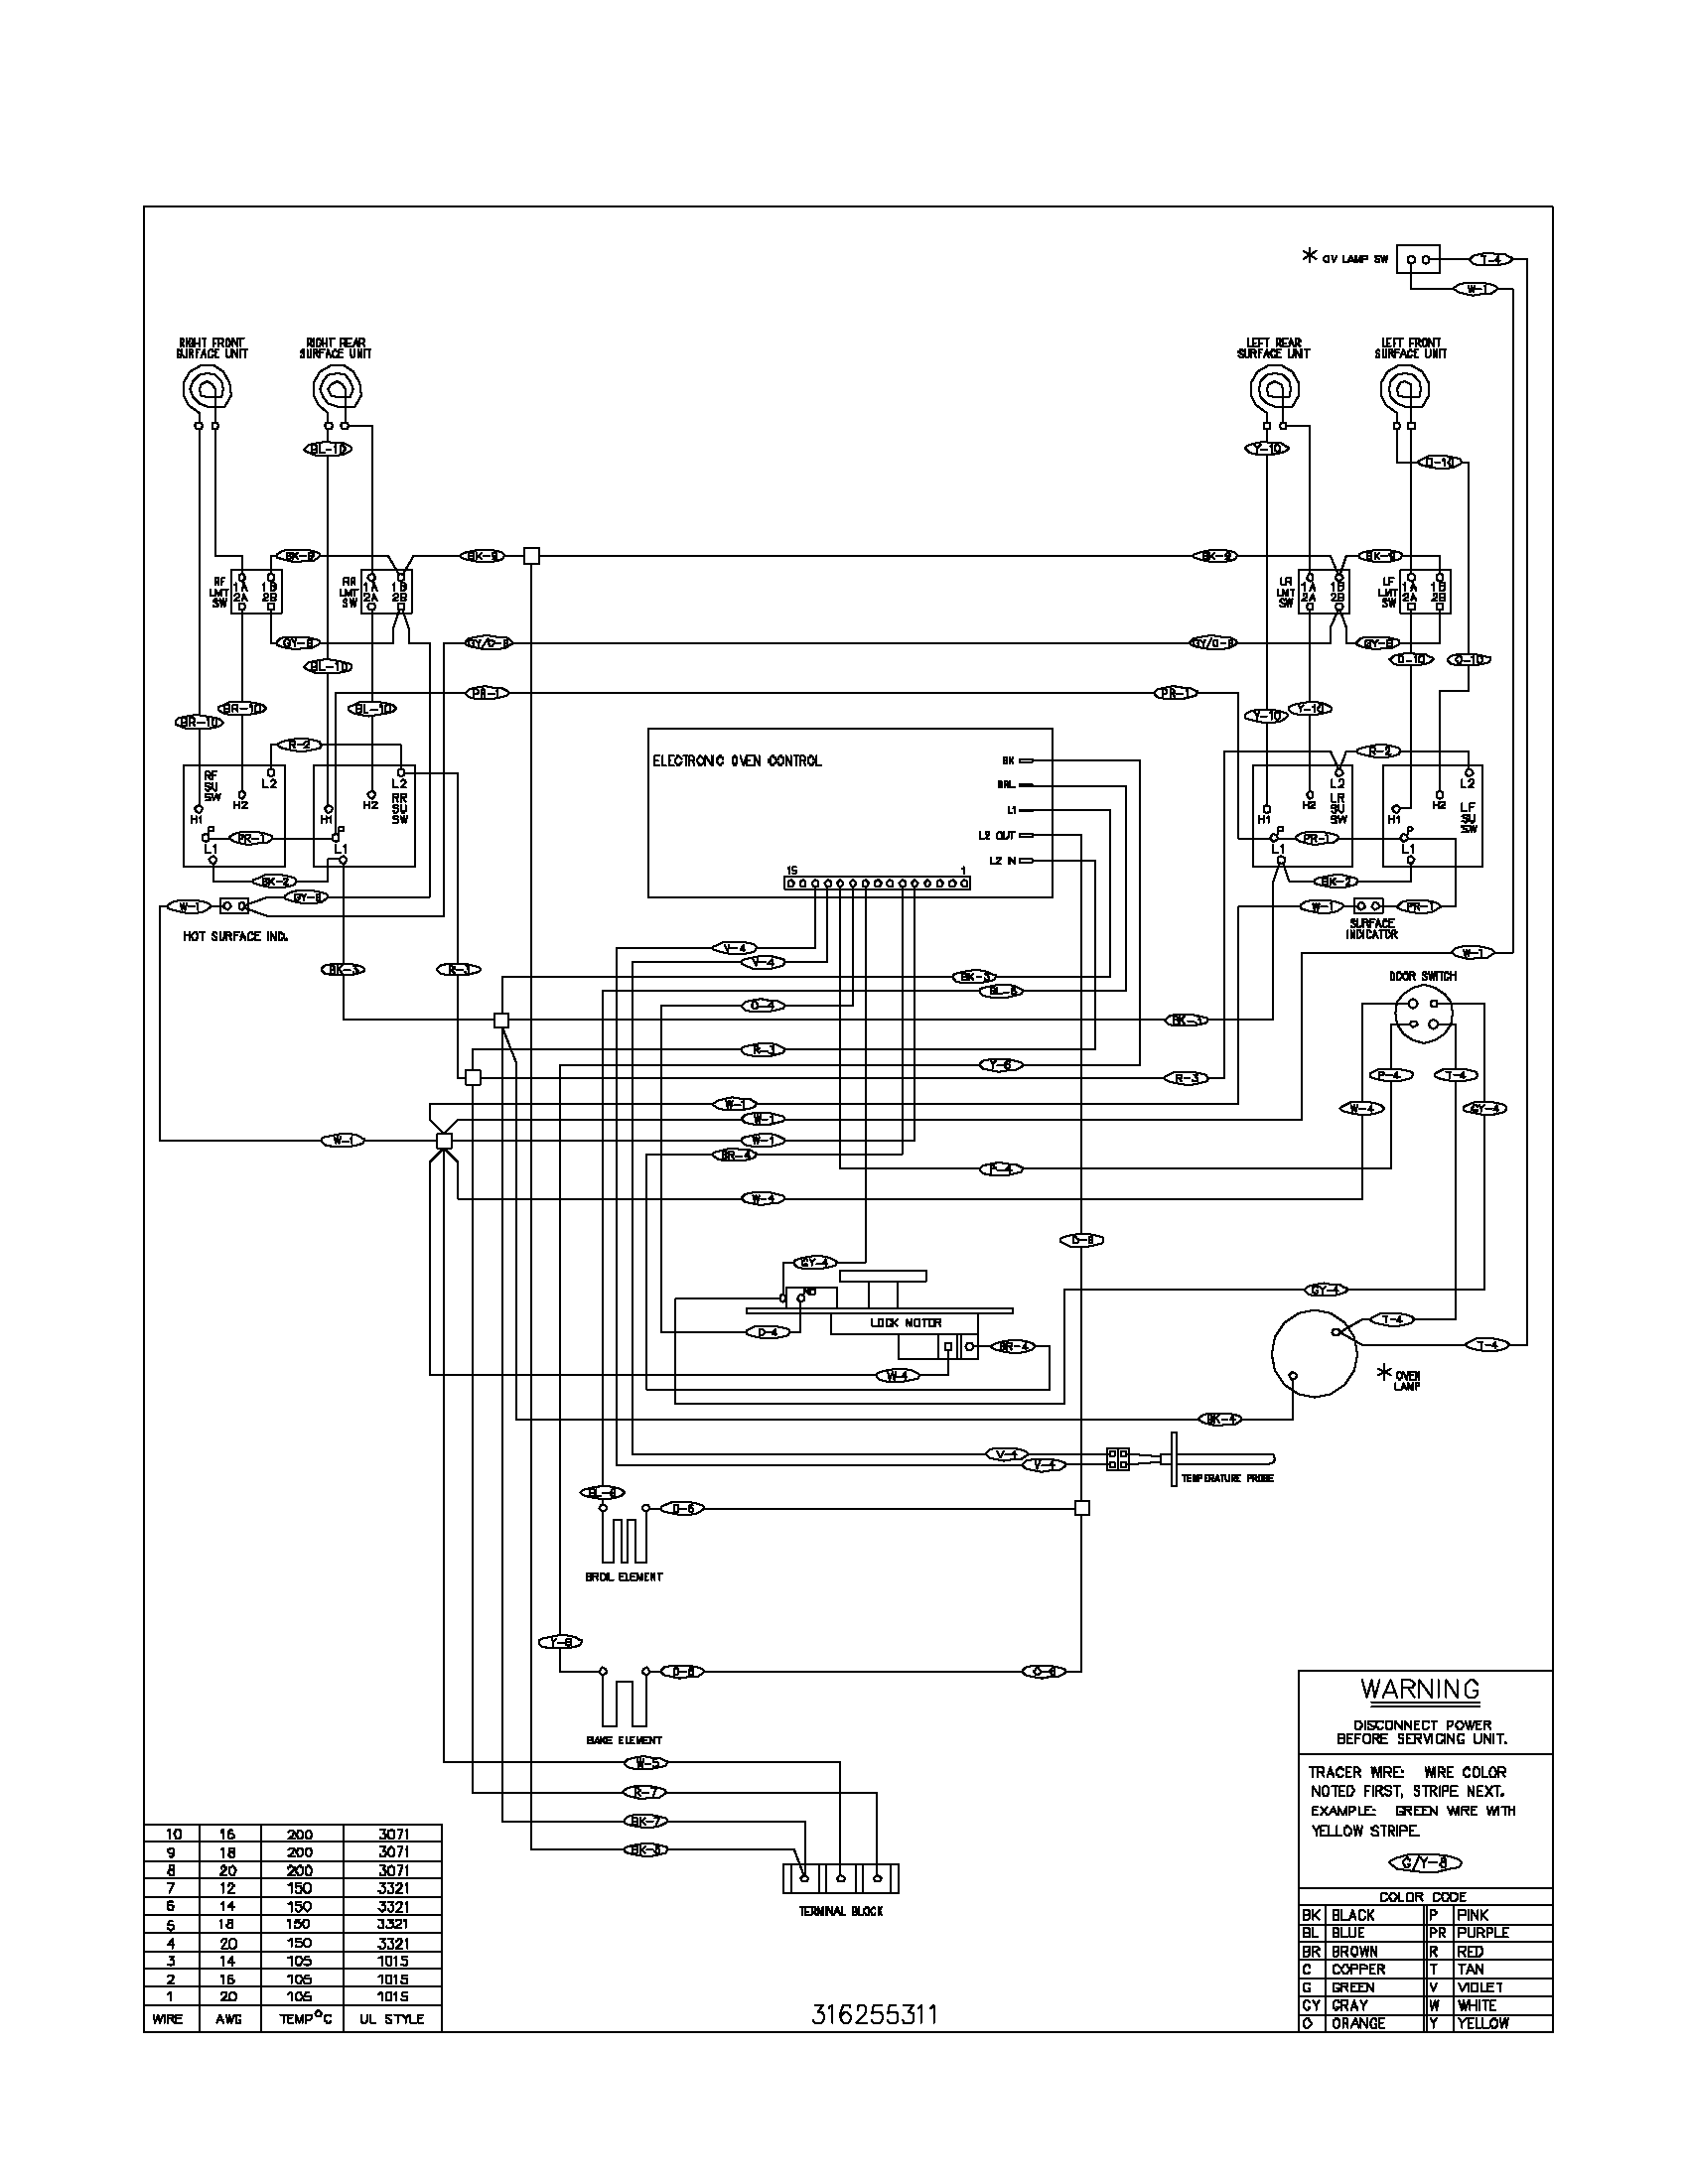 Range Rover Wire Diagrams Data Schema P38 Wiring Frigidaire Fef366ccb Electric Timer Stove Clocks Diagram L322